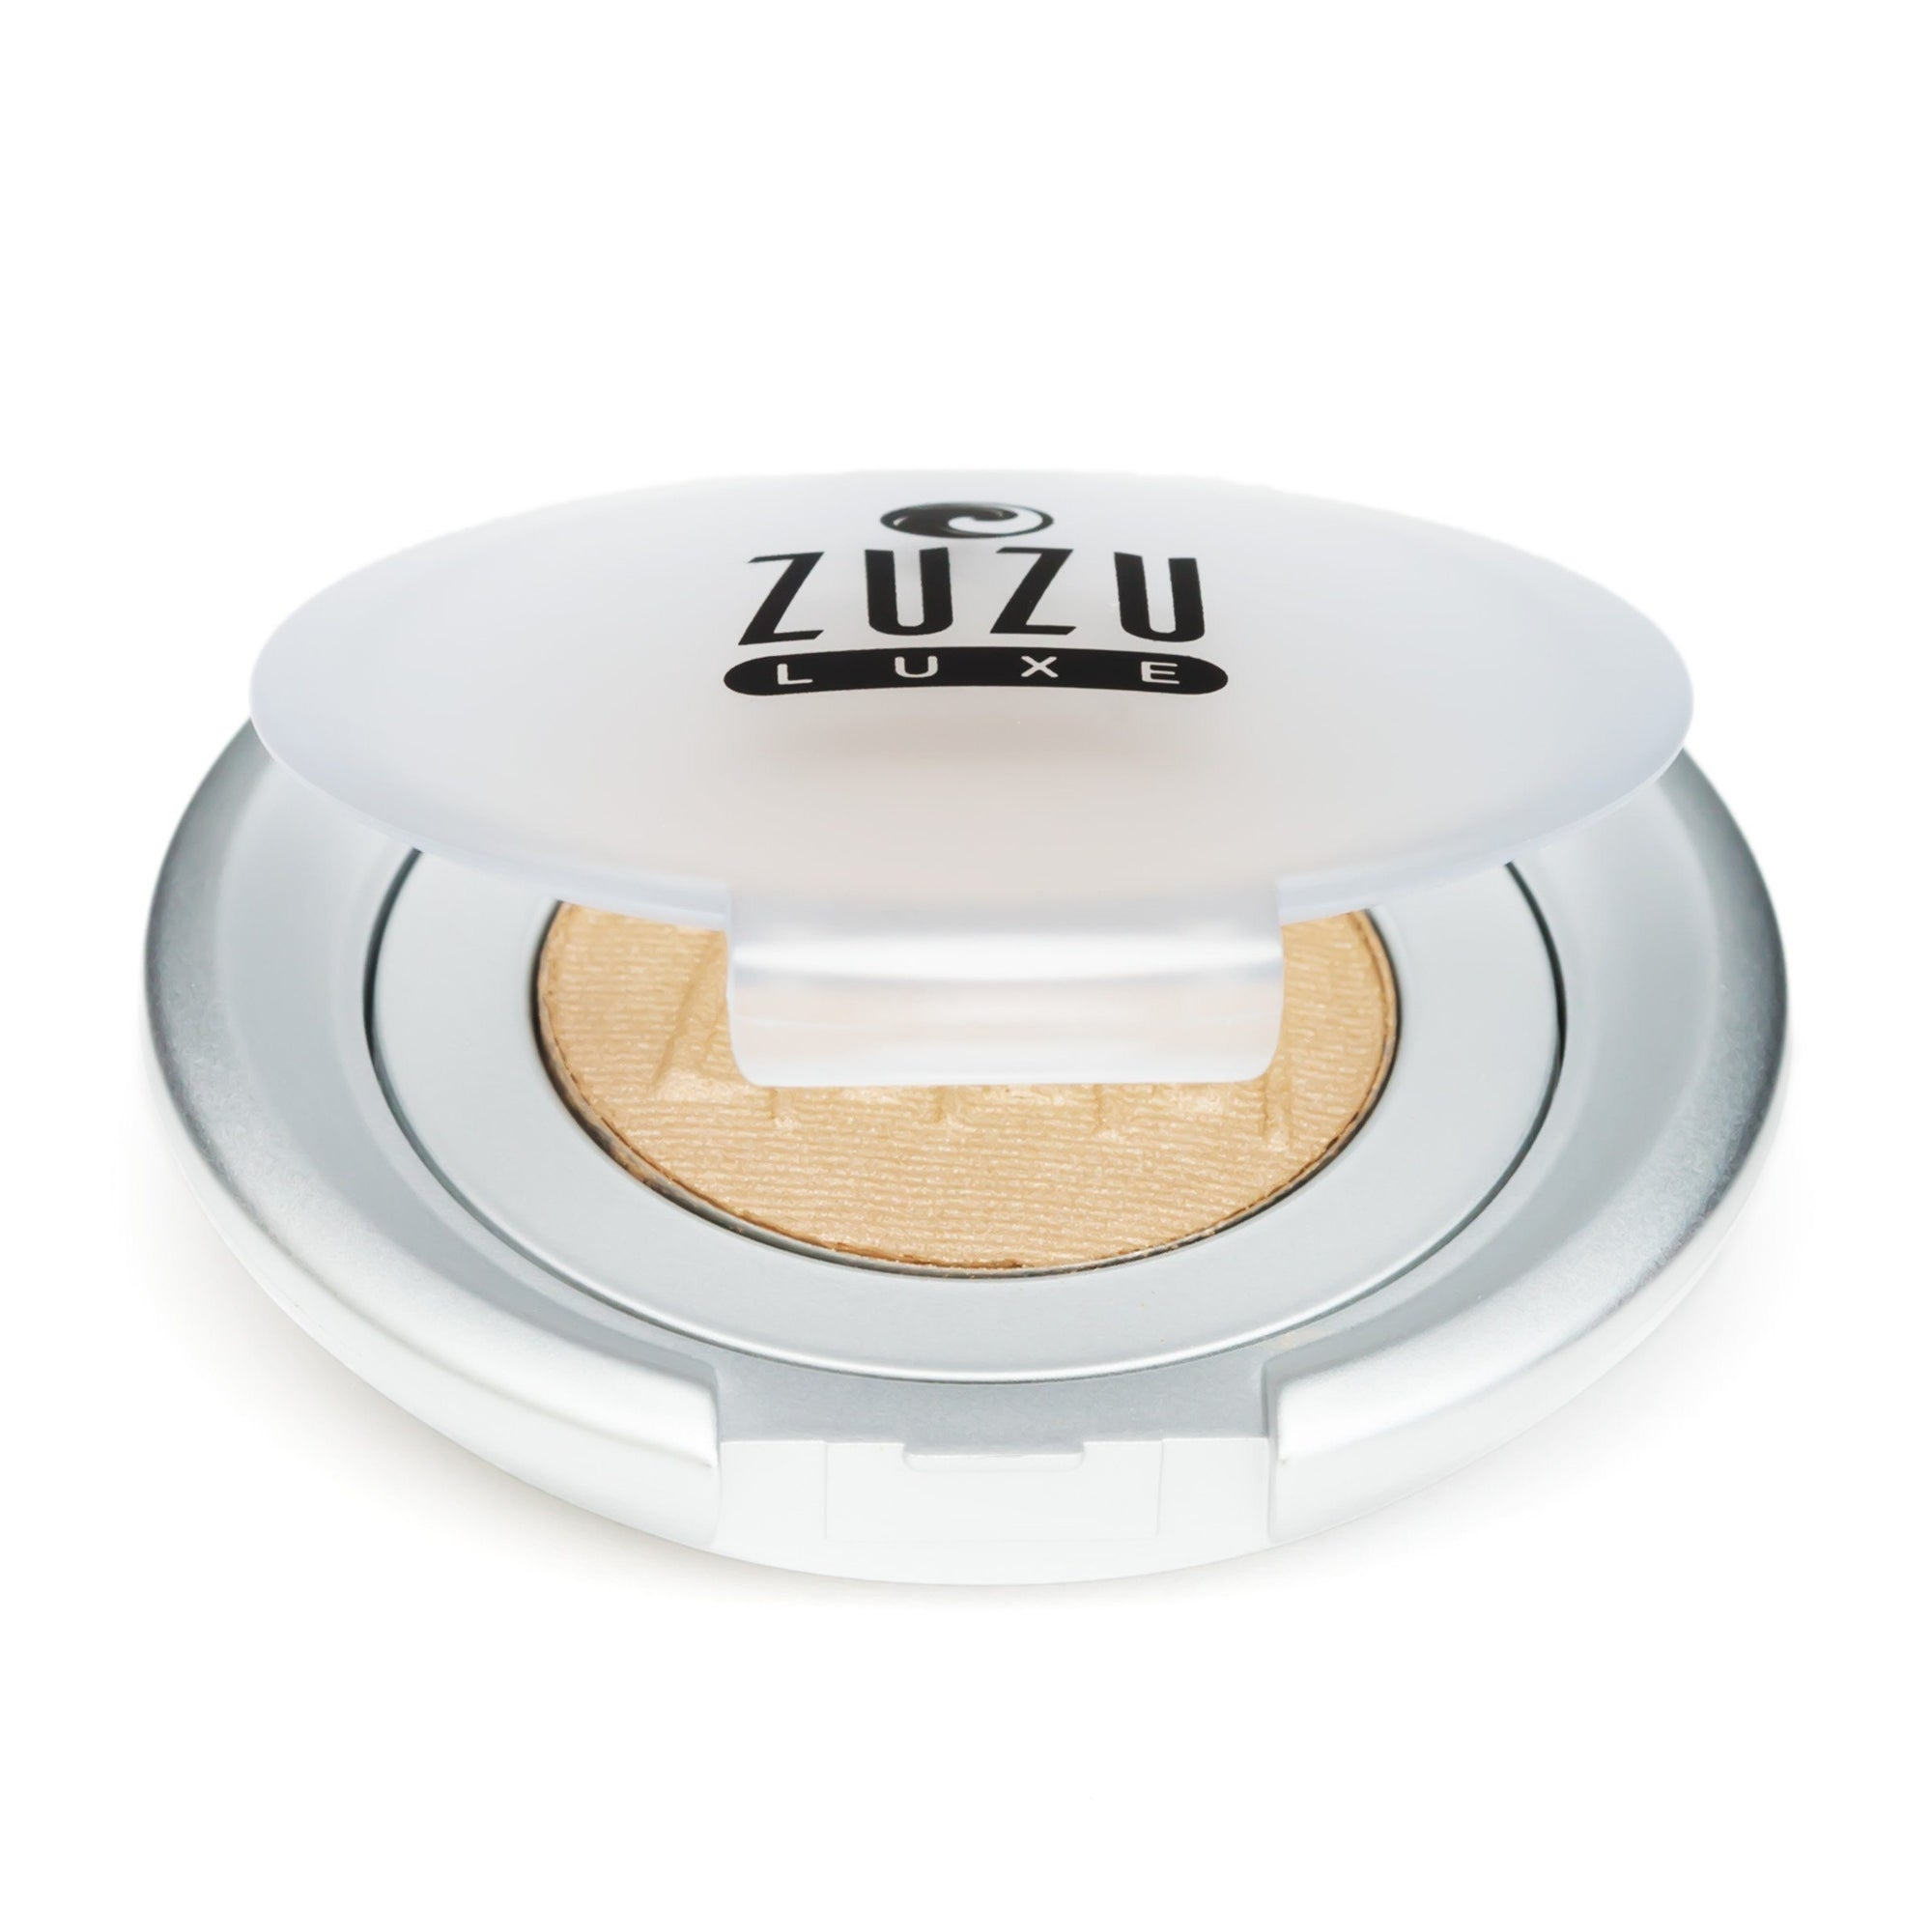 Beauty & Skin Care - Zuzu Luxe - Vegan Eyeshadow, Egyptian Gold